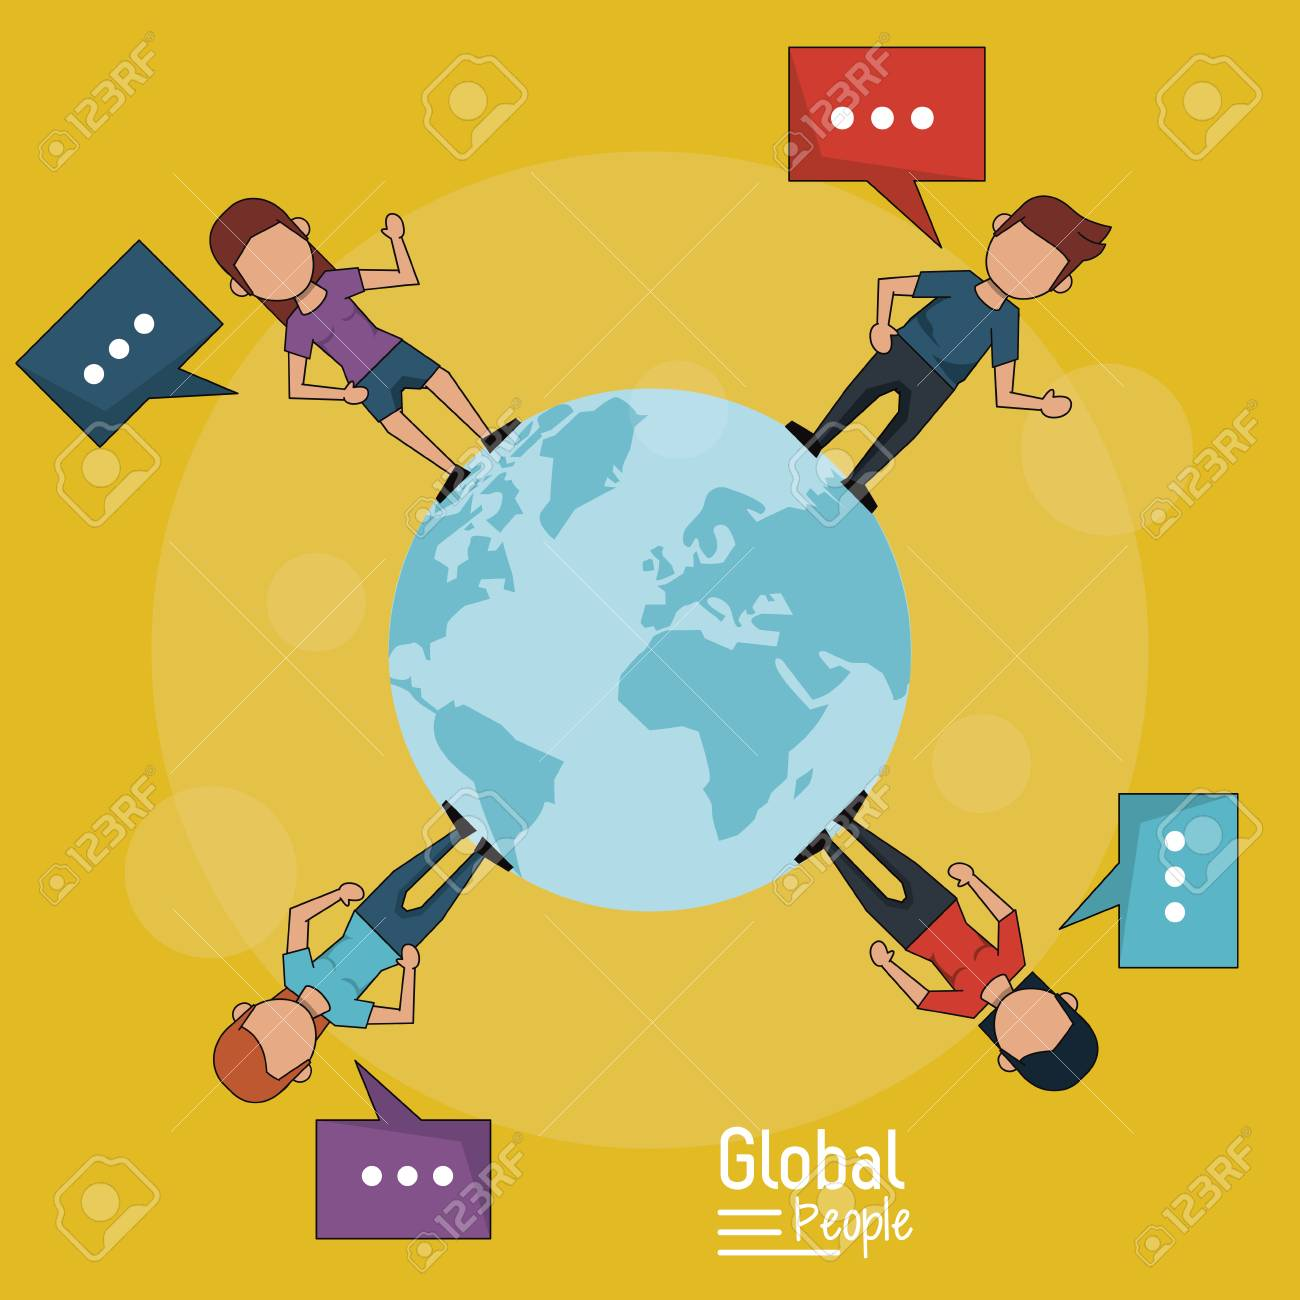 poster of global people with yellow background of planet earth and people around her with text dialogues vector illustration - 81011010